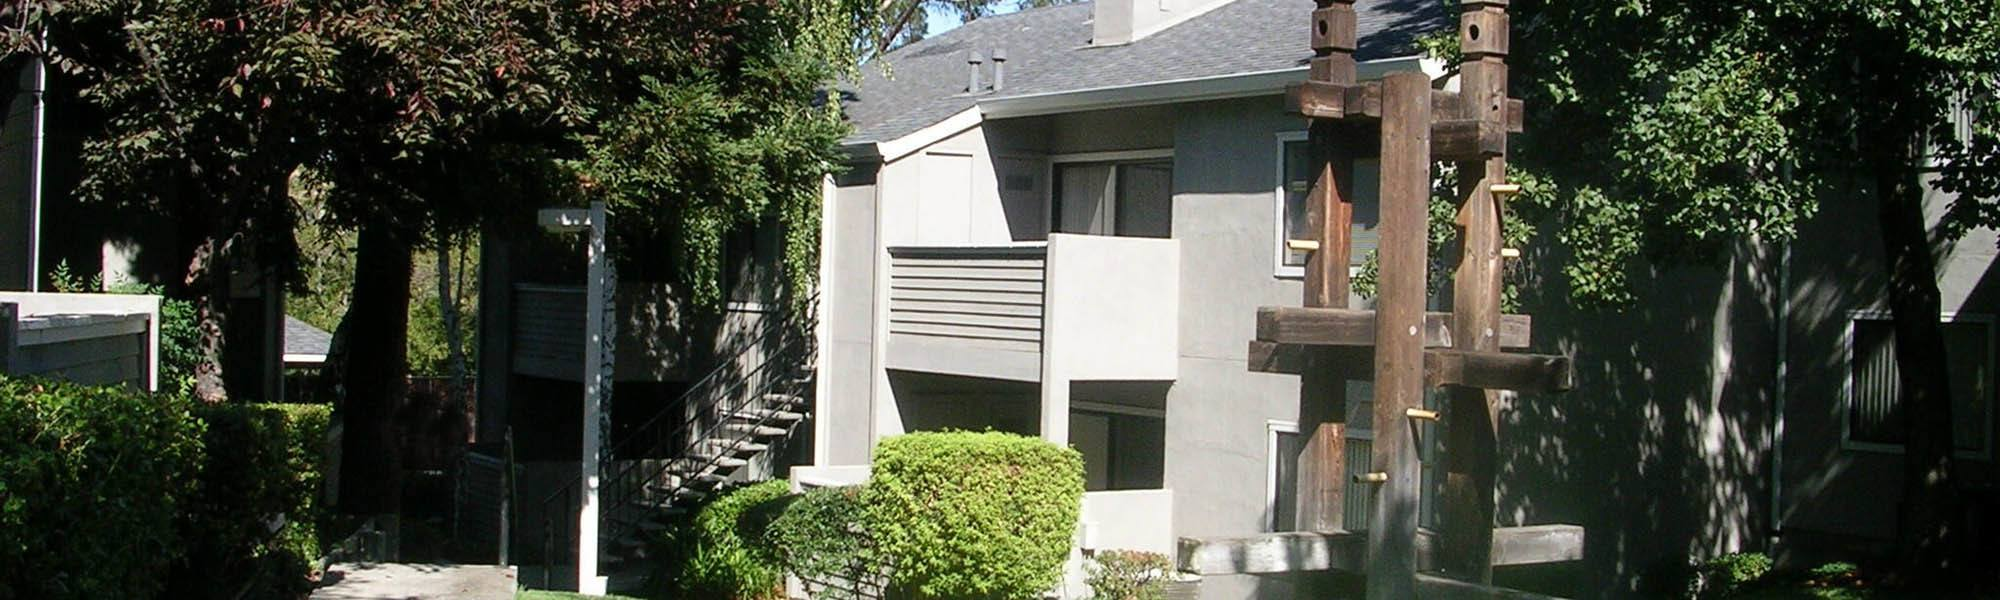 Contact Plum Tree Apartment Homes on our website